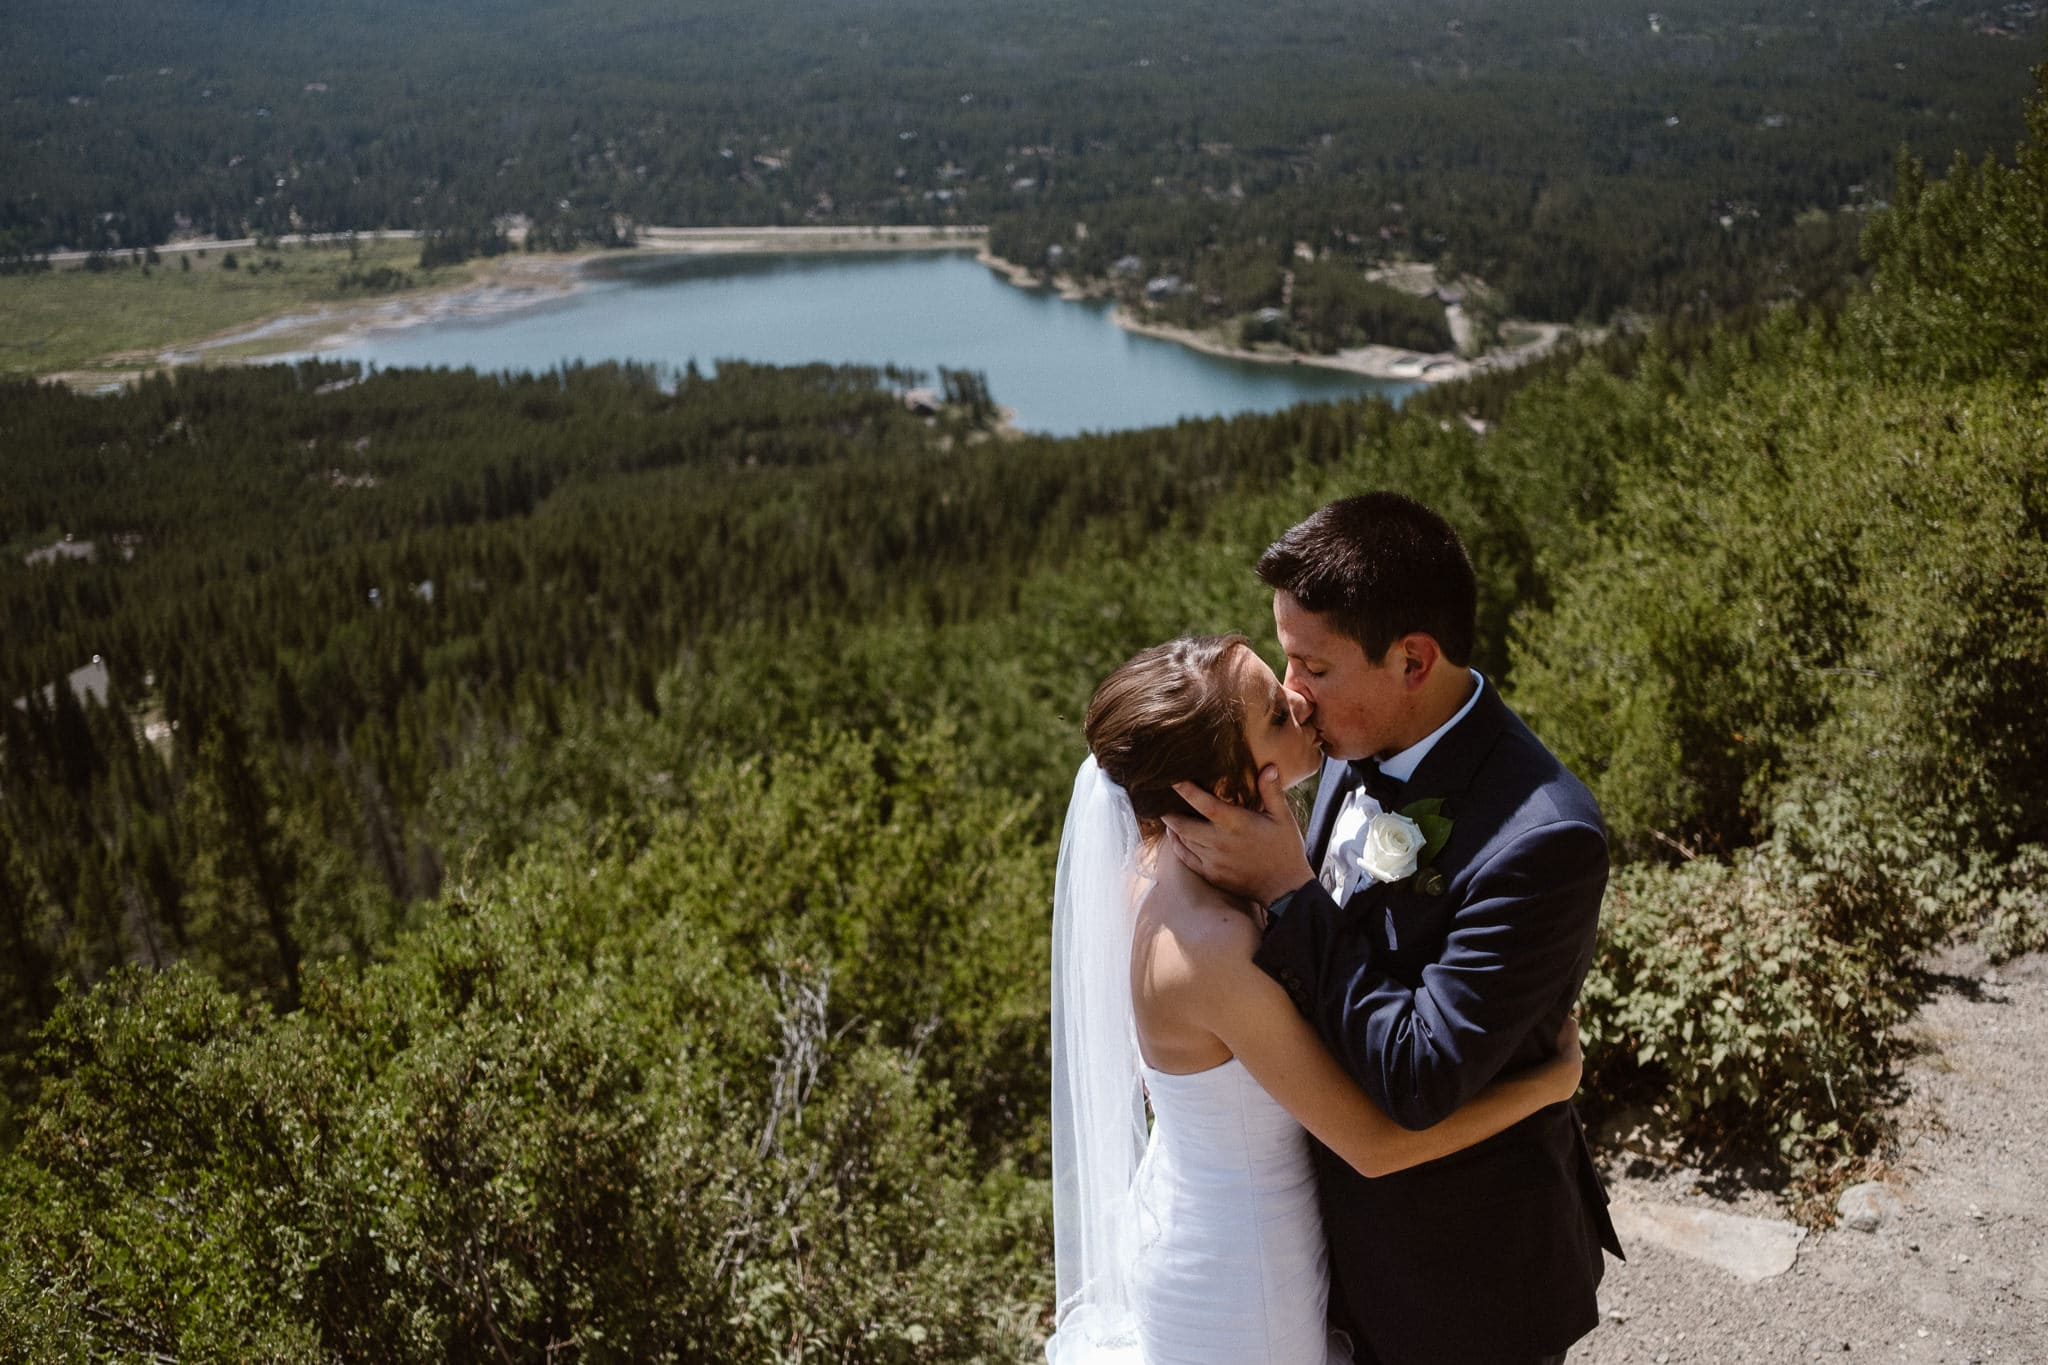 Lodge at Breckenridge Wedding Photographer, Colorado mountain wedding photographer, intimate wedding, bride and groom portrait, bridal portrait, bride and groom by alpine lake